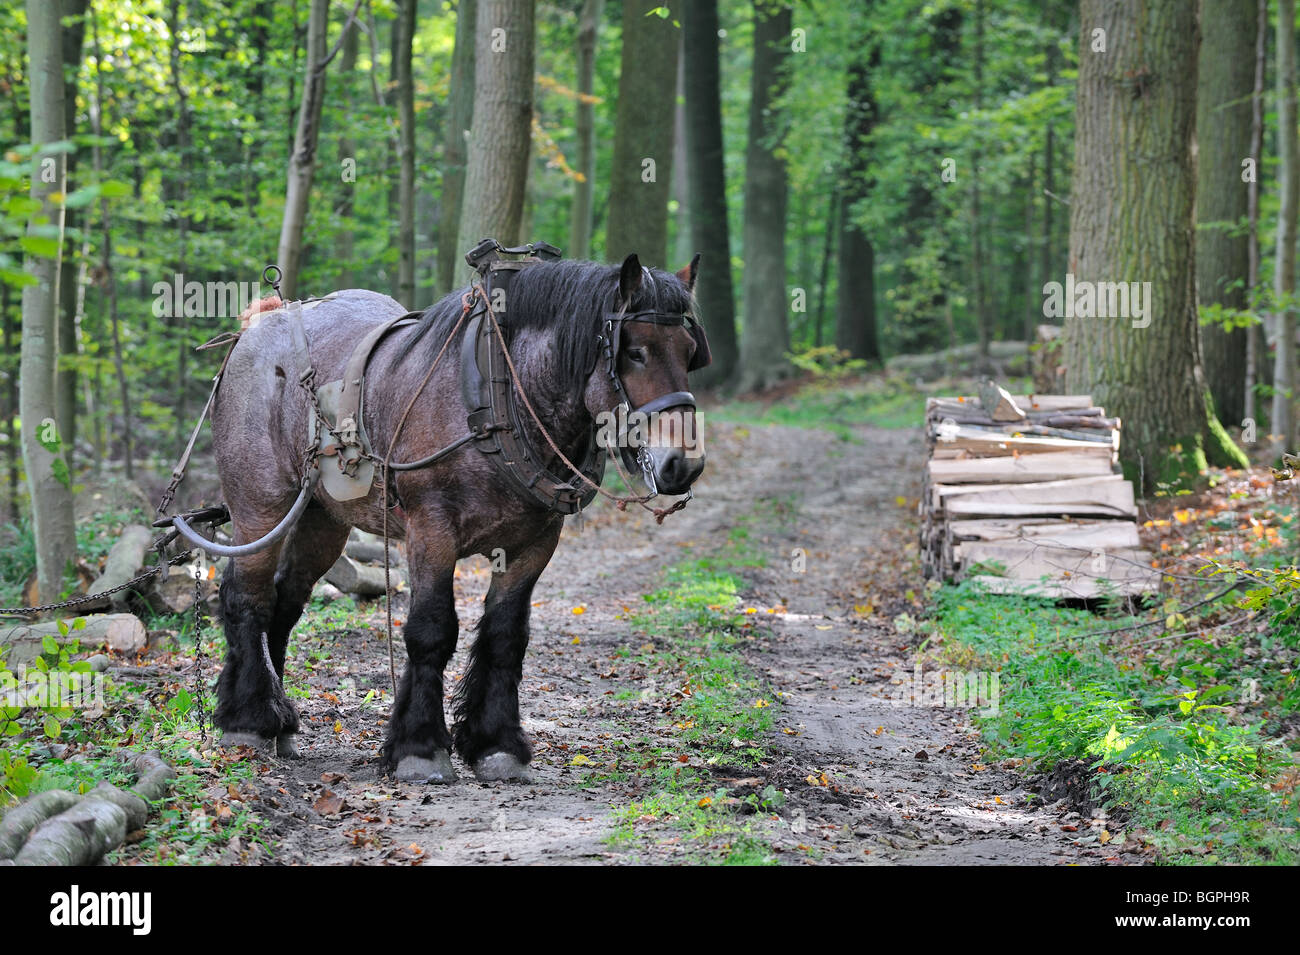 Forester's draught horse (Equus caballus) working in forest of nature reserve - Stock Image